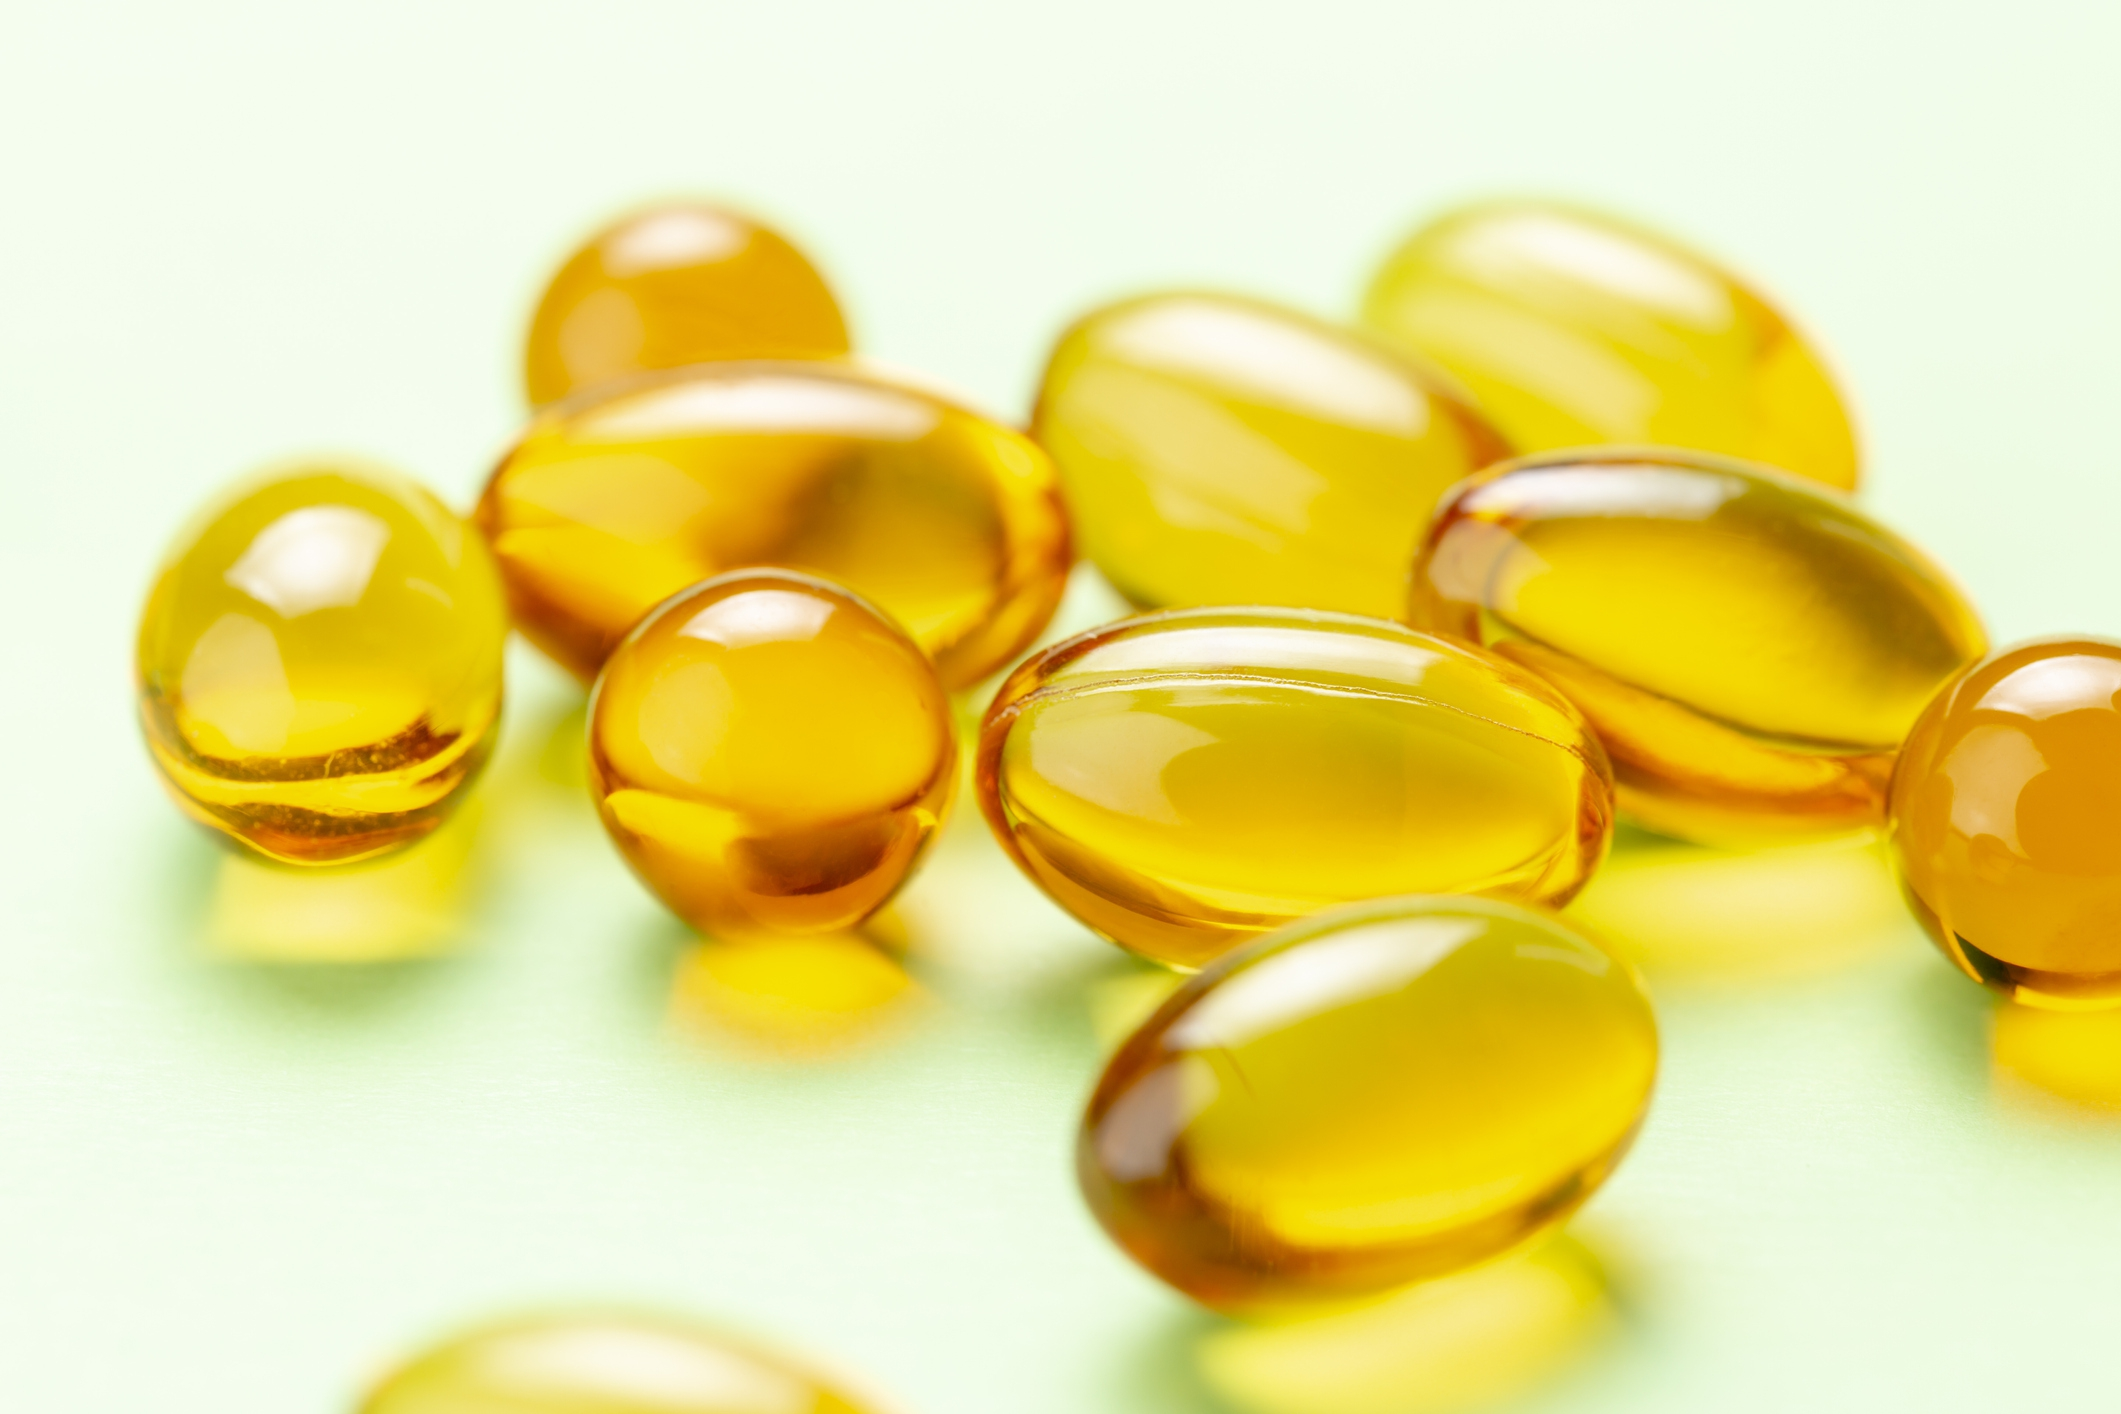 Close up of Vitamin D3 Omega 3 fish oil capsules on green background